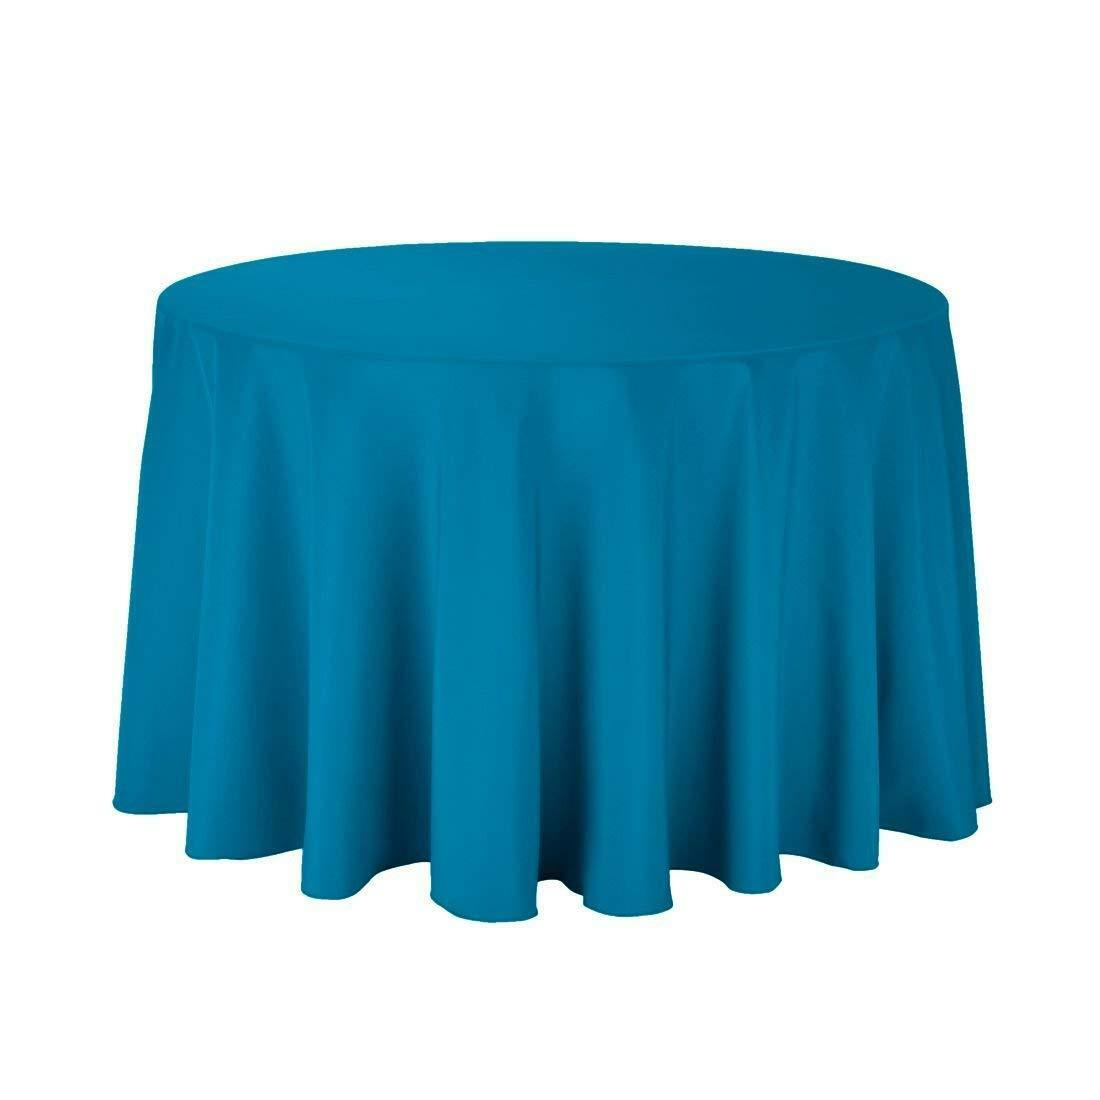 round tablecloths for circular table cover washable